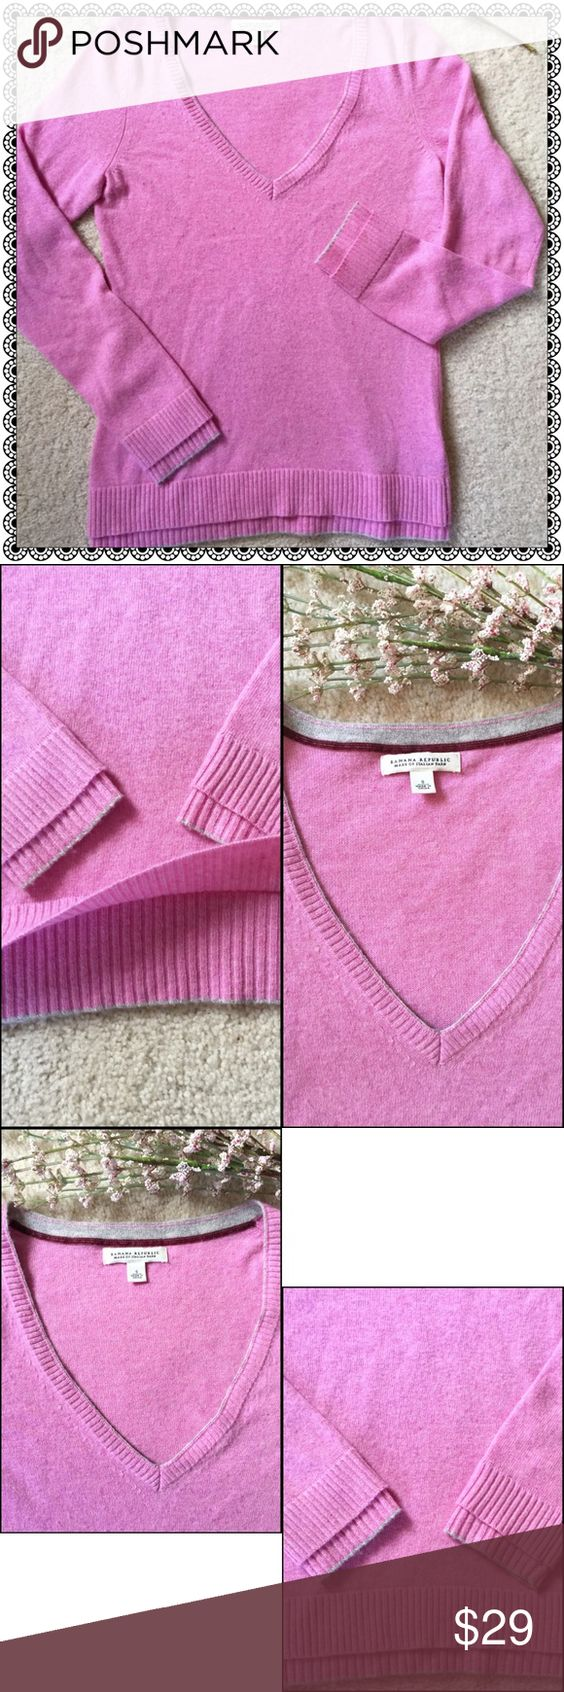 BANANA REPUBLIC 💕GORGEOUS Mauve/Grey Trim Sweater BEAUTIFUL SOFT, Part Cashmere Sweater with Pretty Double Layered Border on Bottom and Sleeves! 😍 Gorgeous Orchid Mauve Color with Light Grey Trim around Neckline, Sleeves, & Bottom Hem ✨ Banana Republic Sweaters